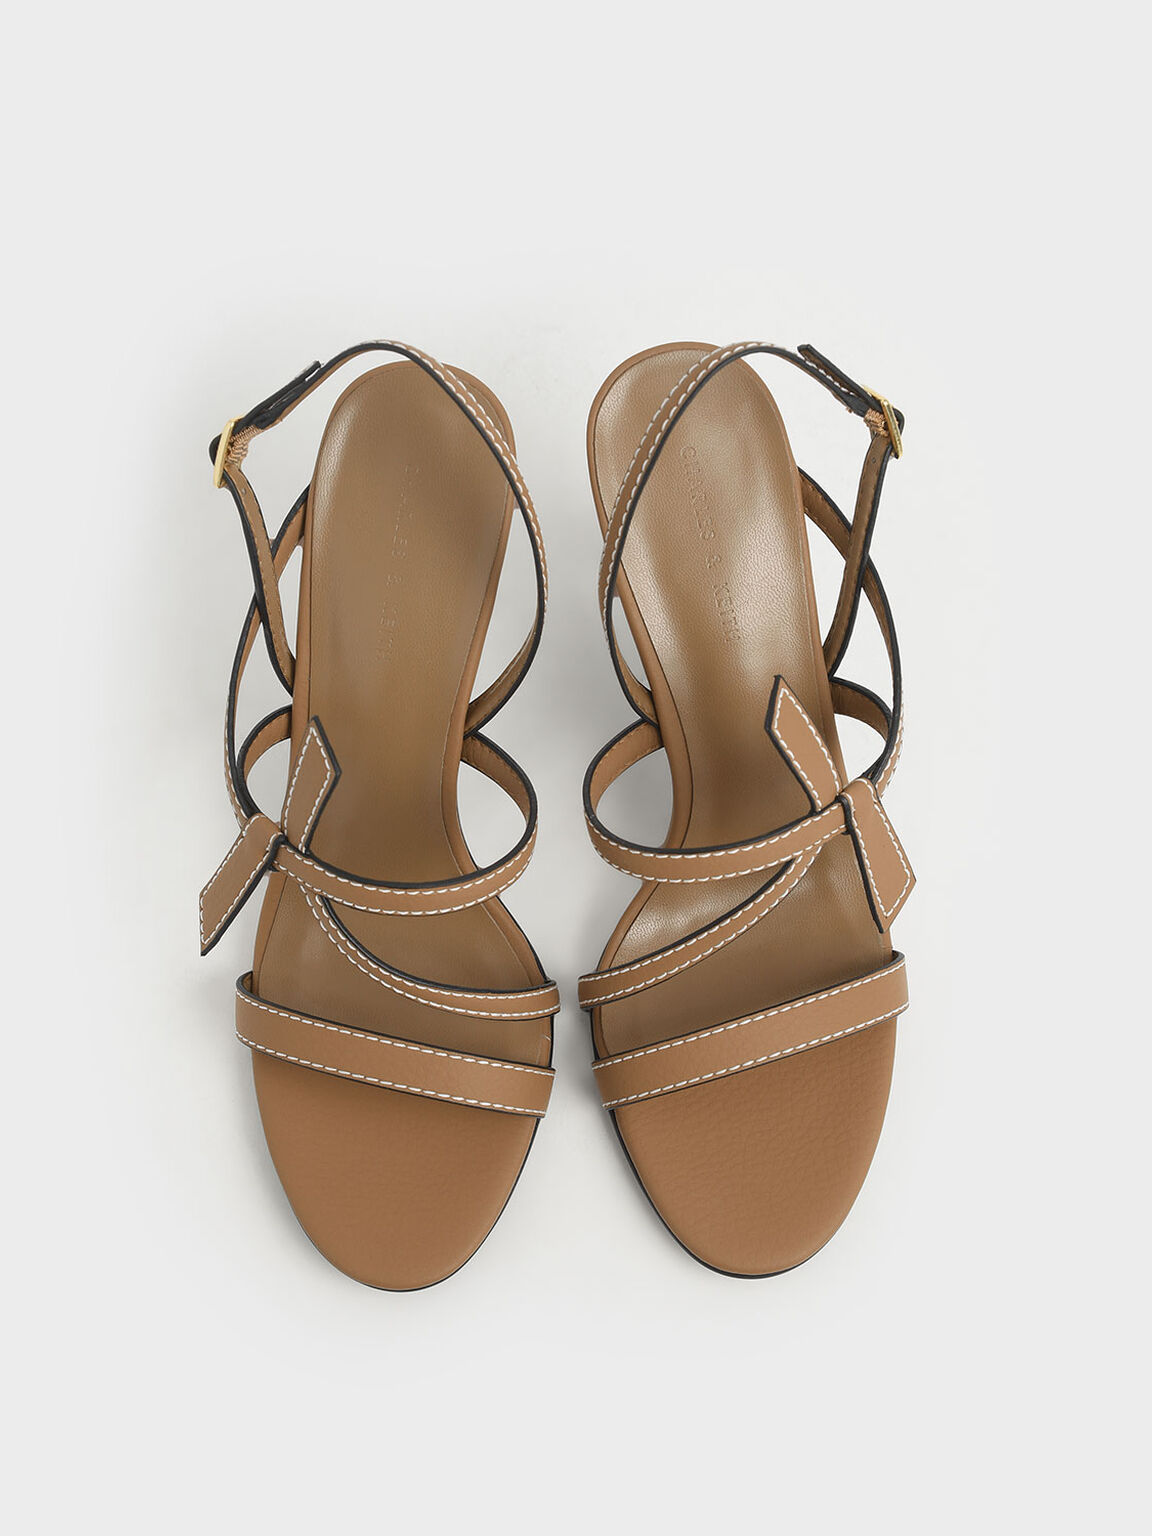 Front Knot Tie Stiletto Sandals, Camel, hi-res